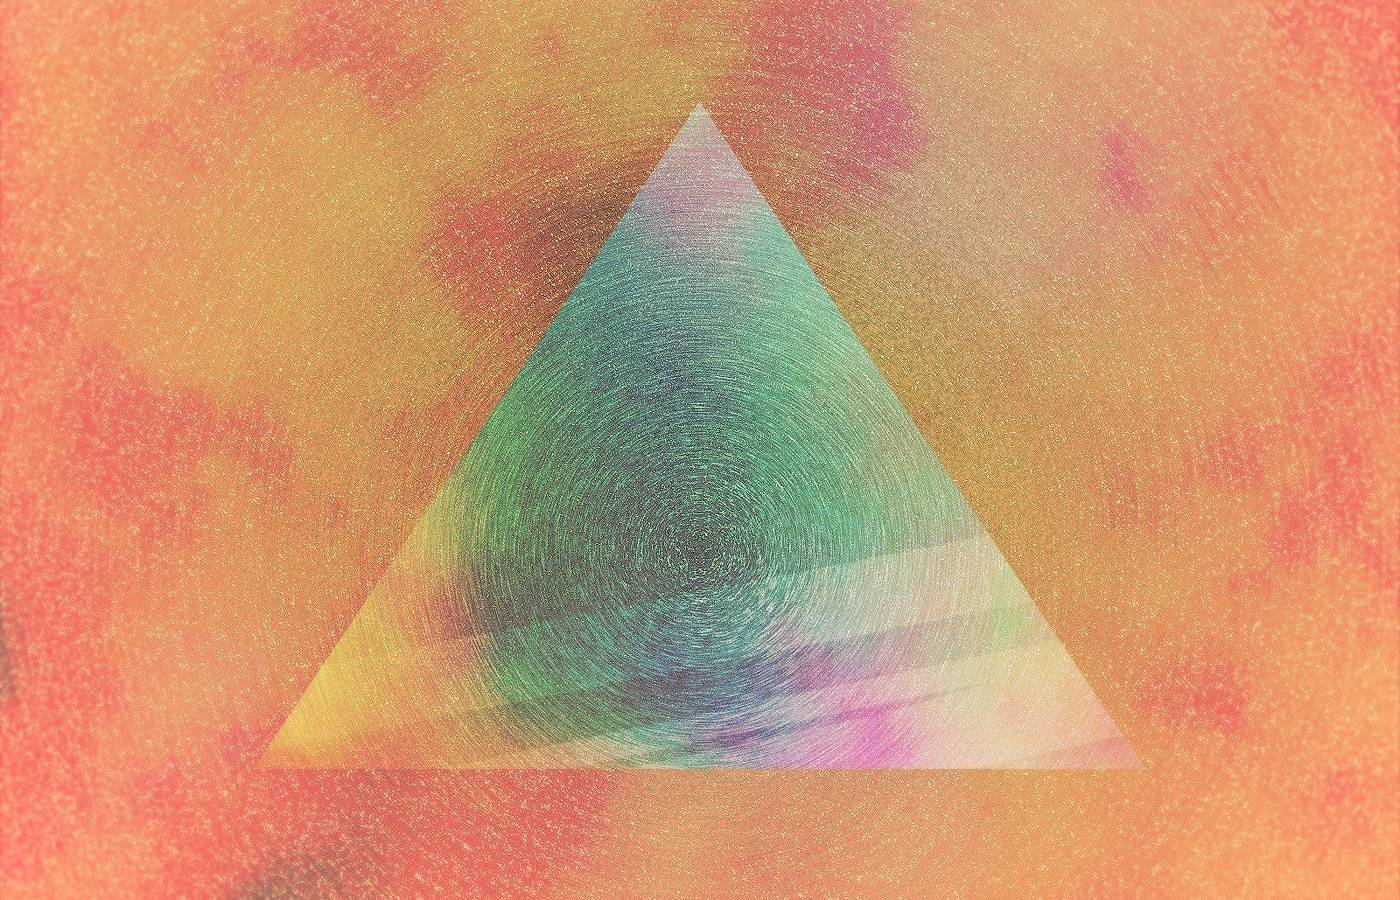 cool triangle wallpaper 44013